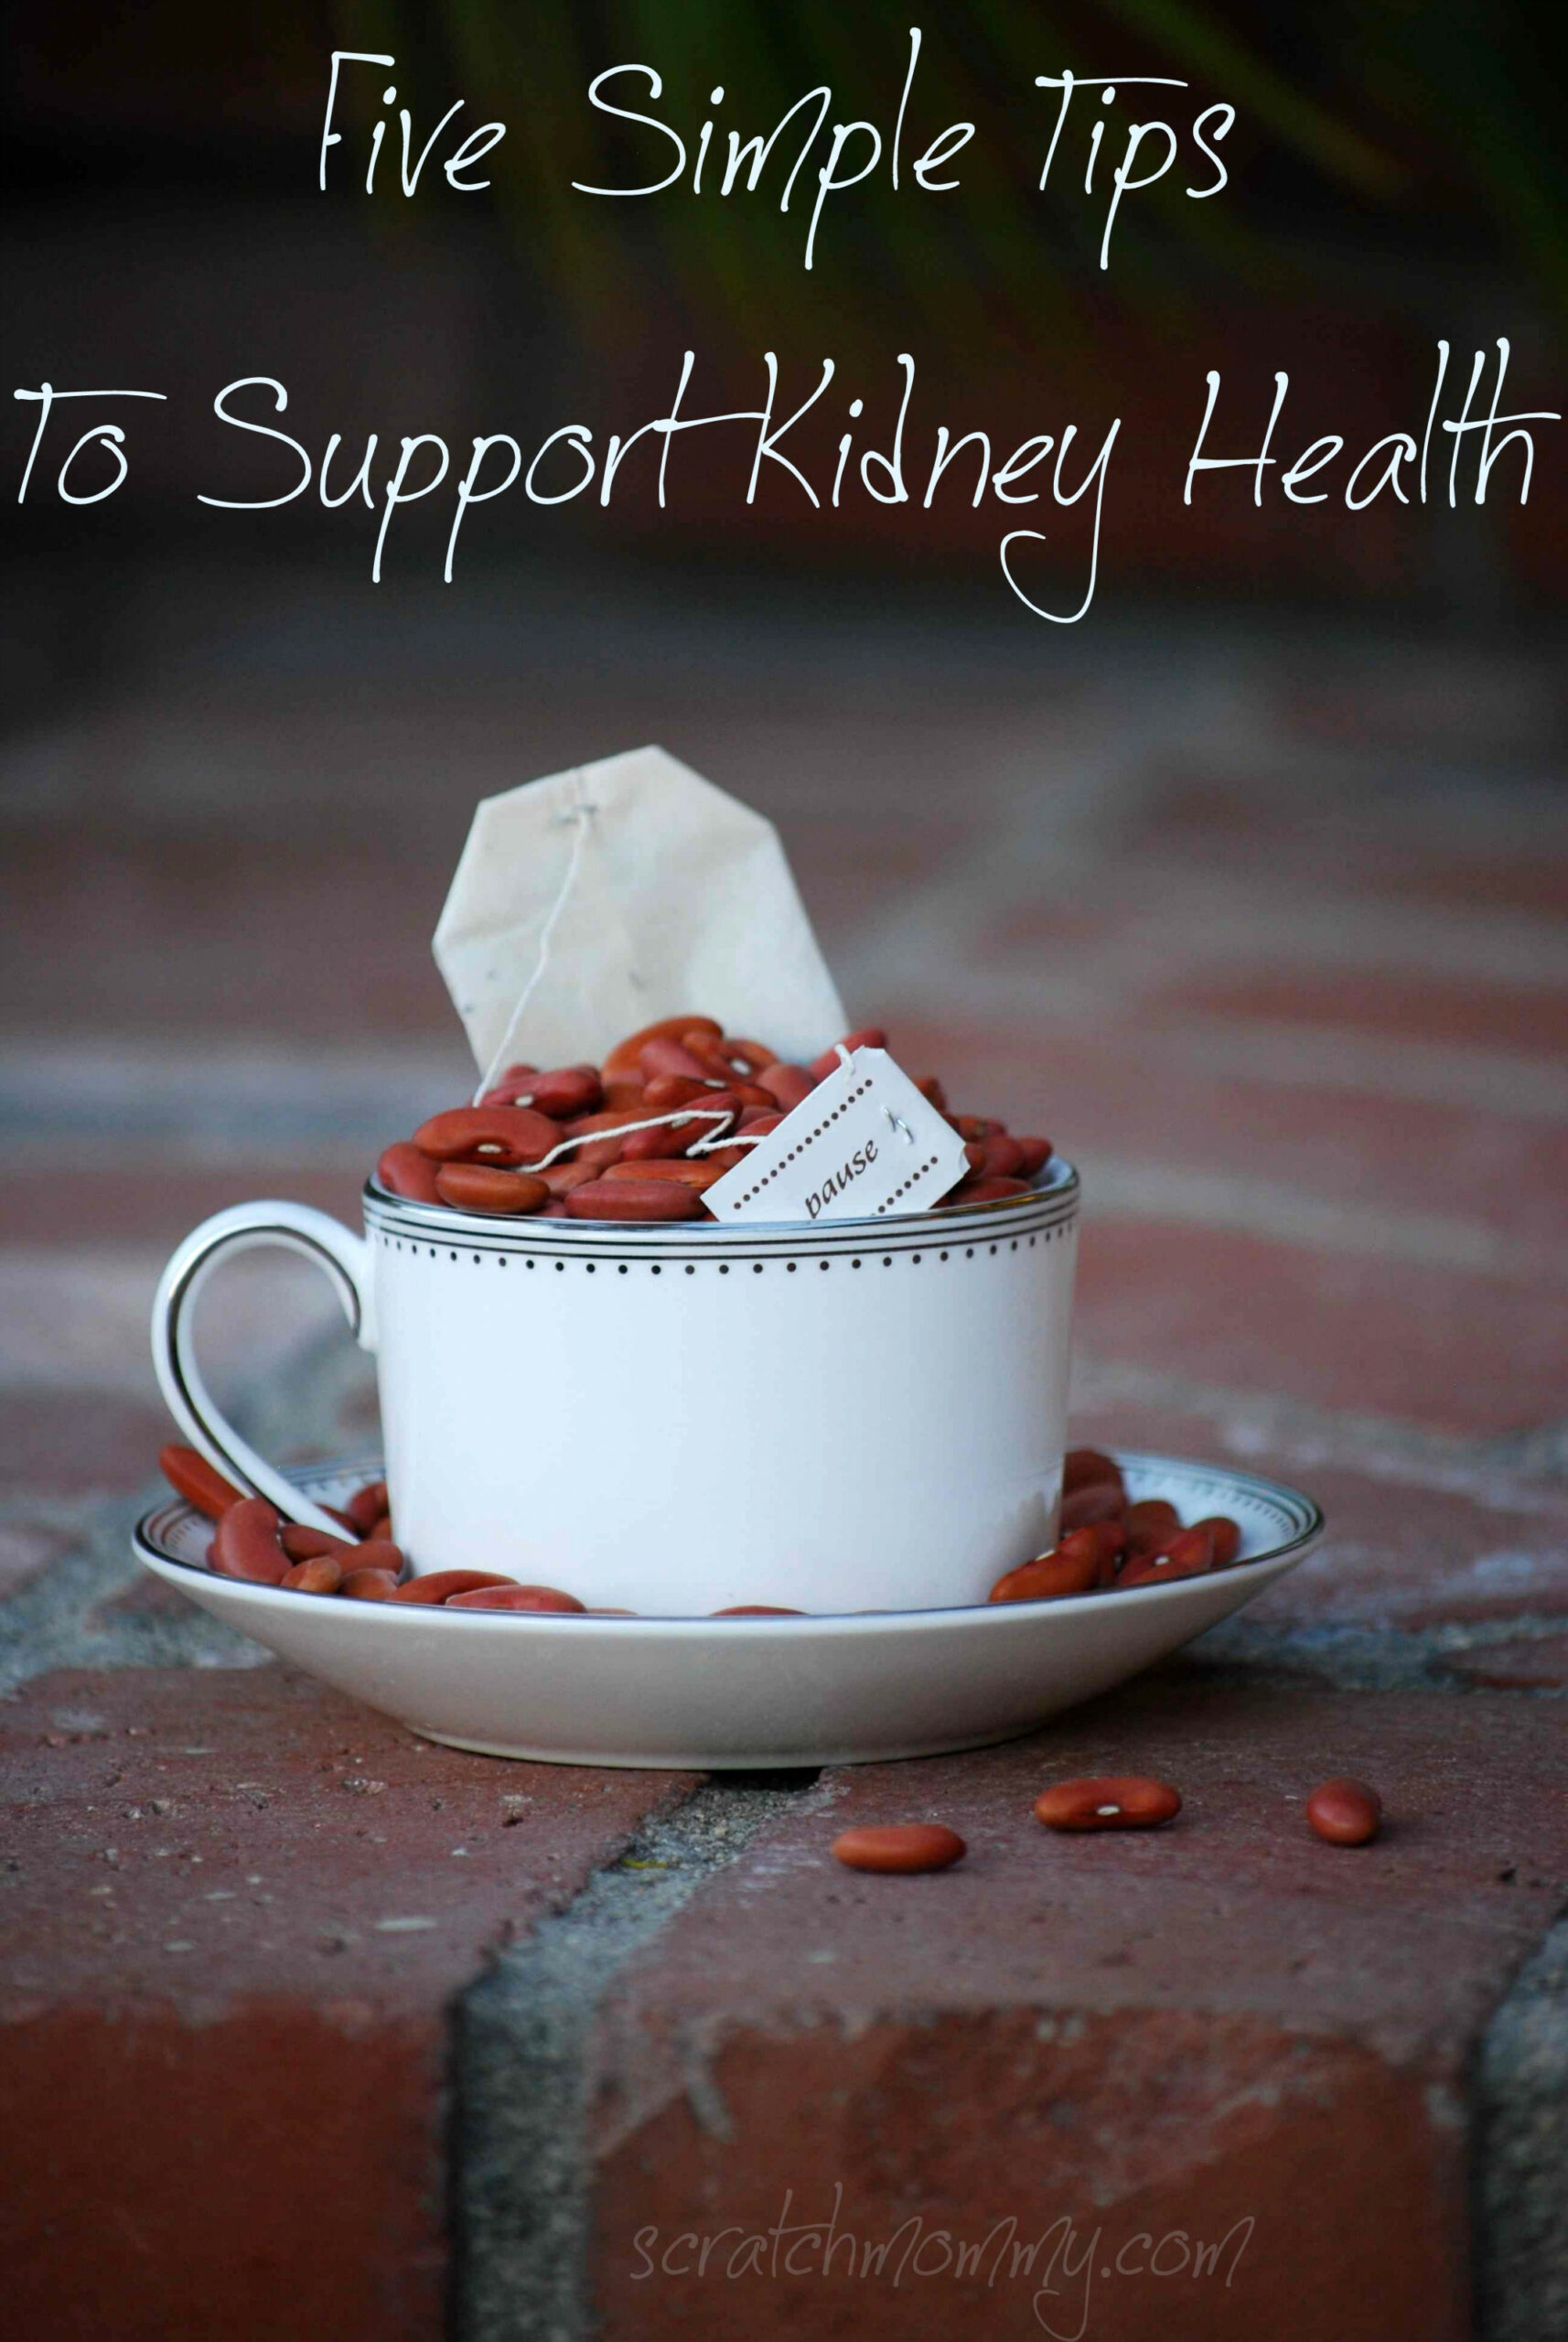 5 Tips For Kidney Health (& A Dandelion Smoothie Recipe)! - Healthy Recipes Kidney Disease